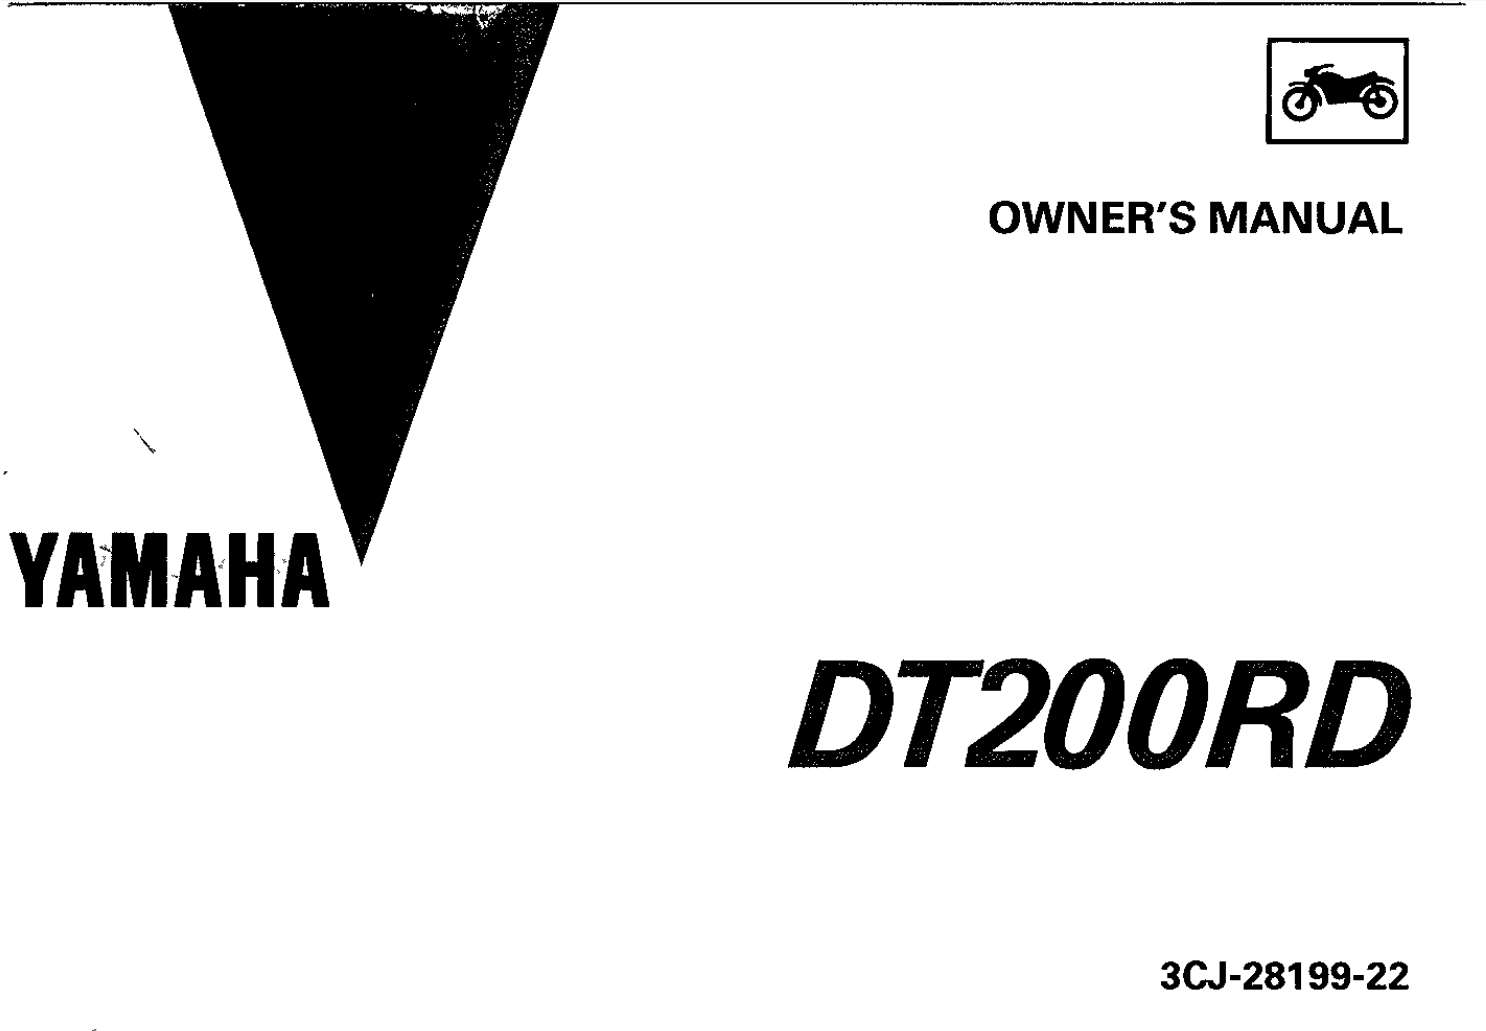 Yamaha DT200 RD 1992 Owner's Manual